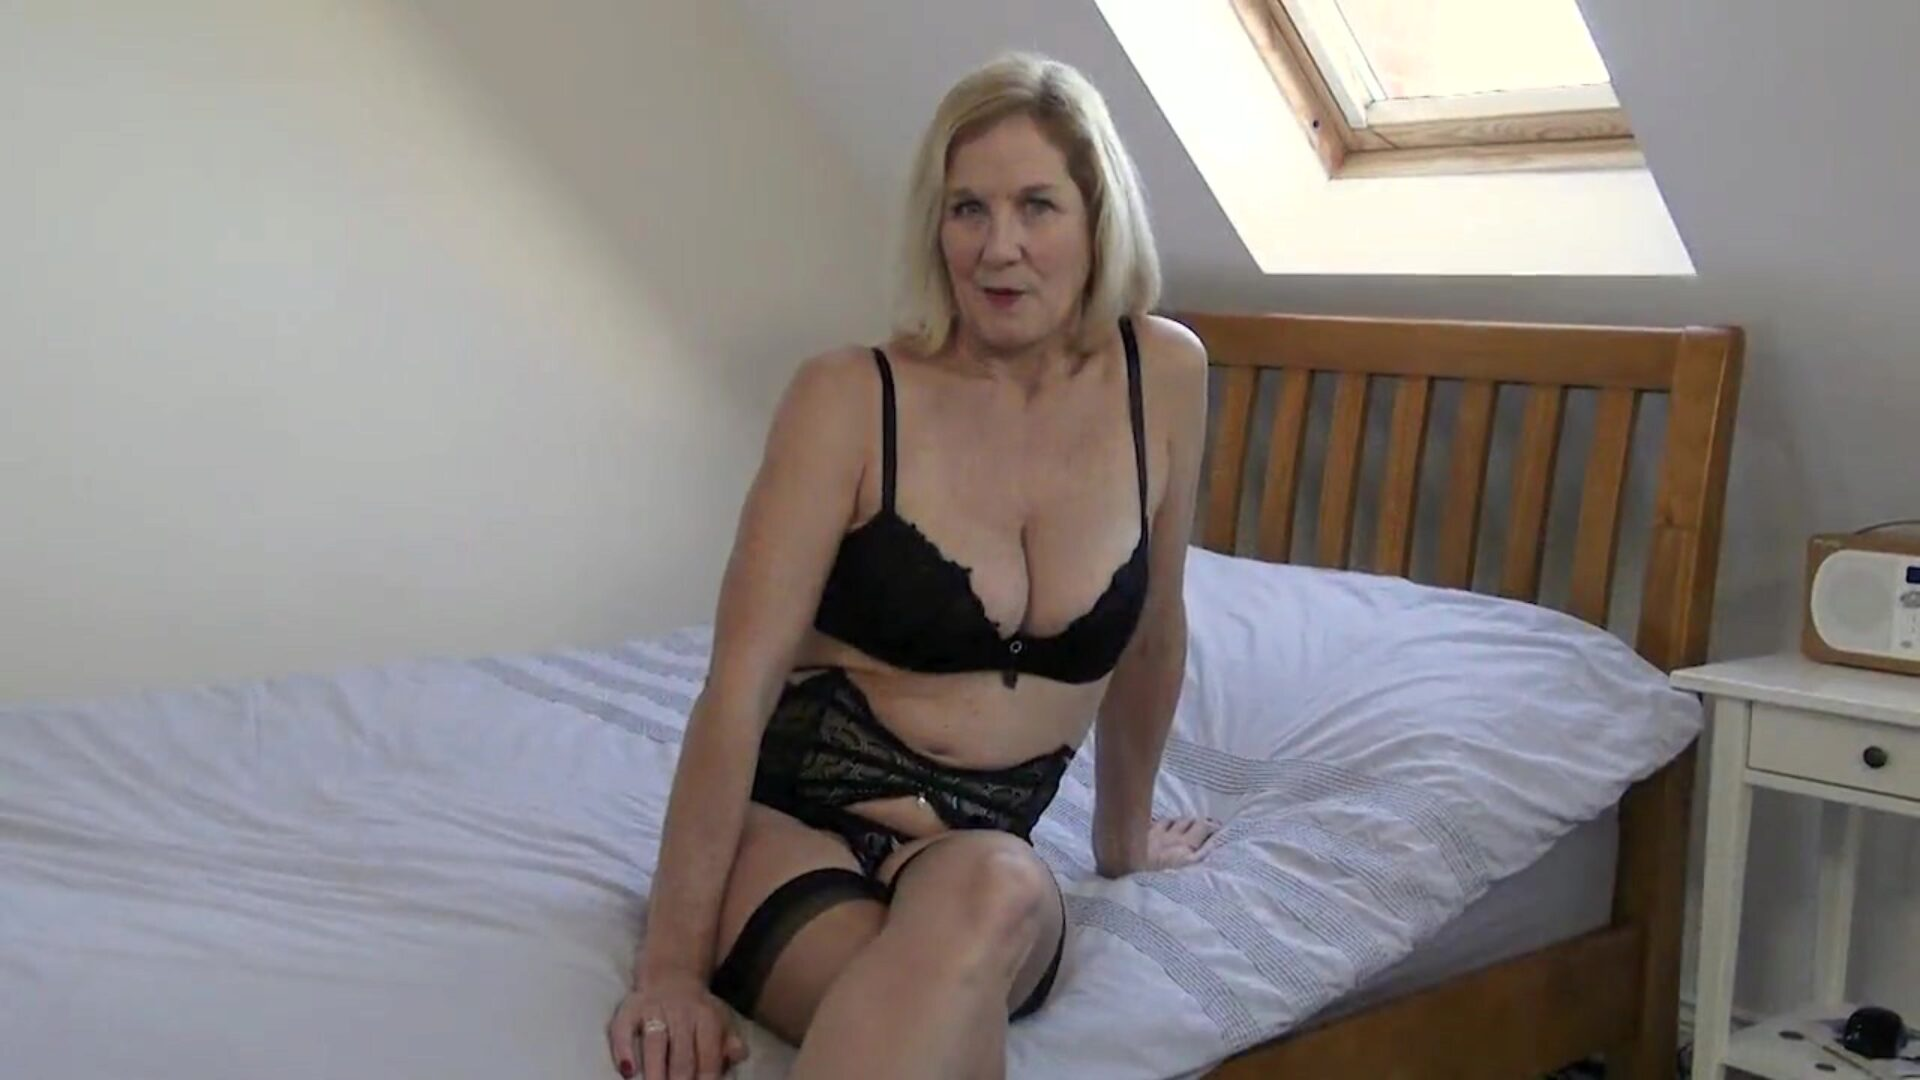 British Milf Molly Shed6 and Molly